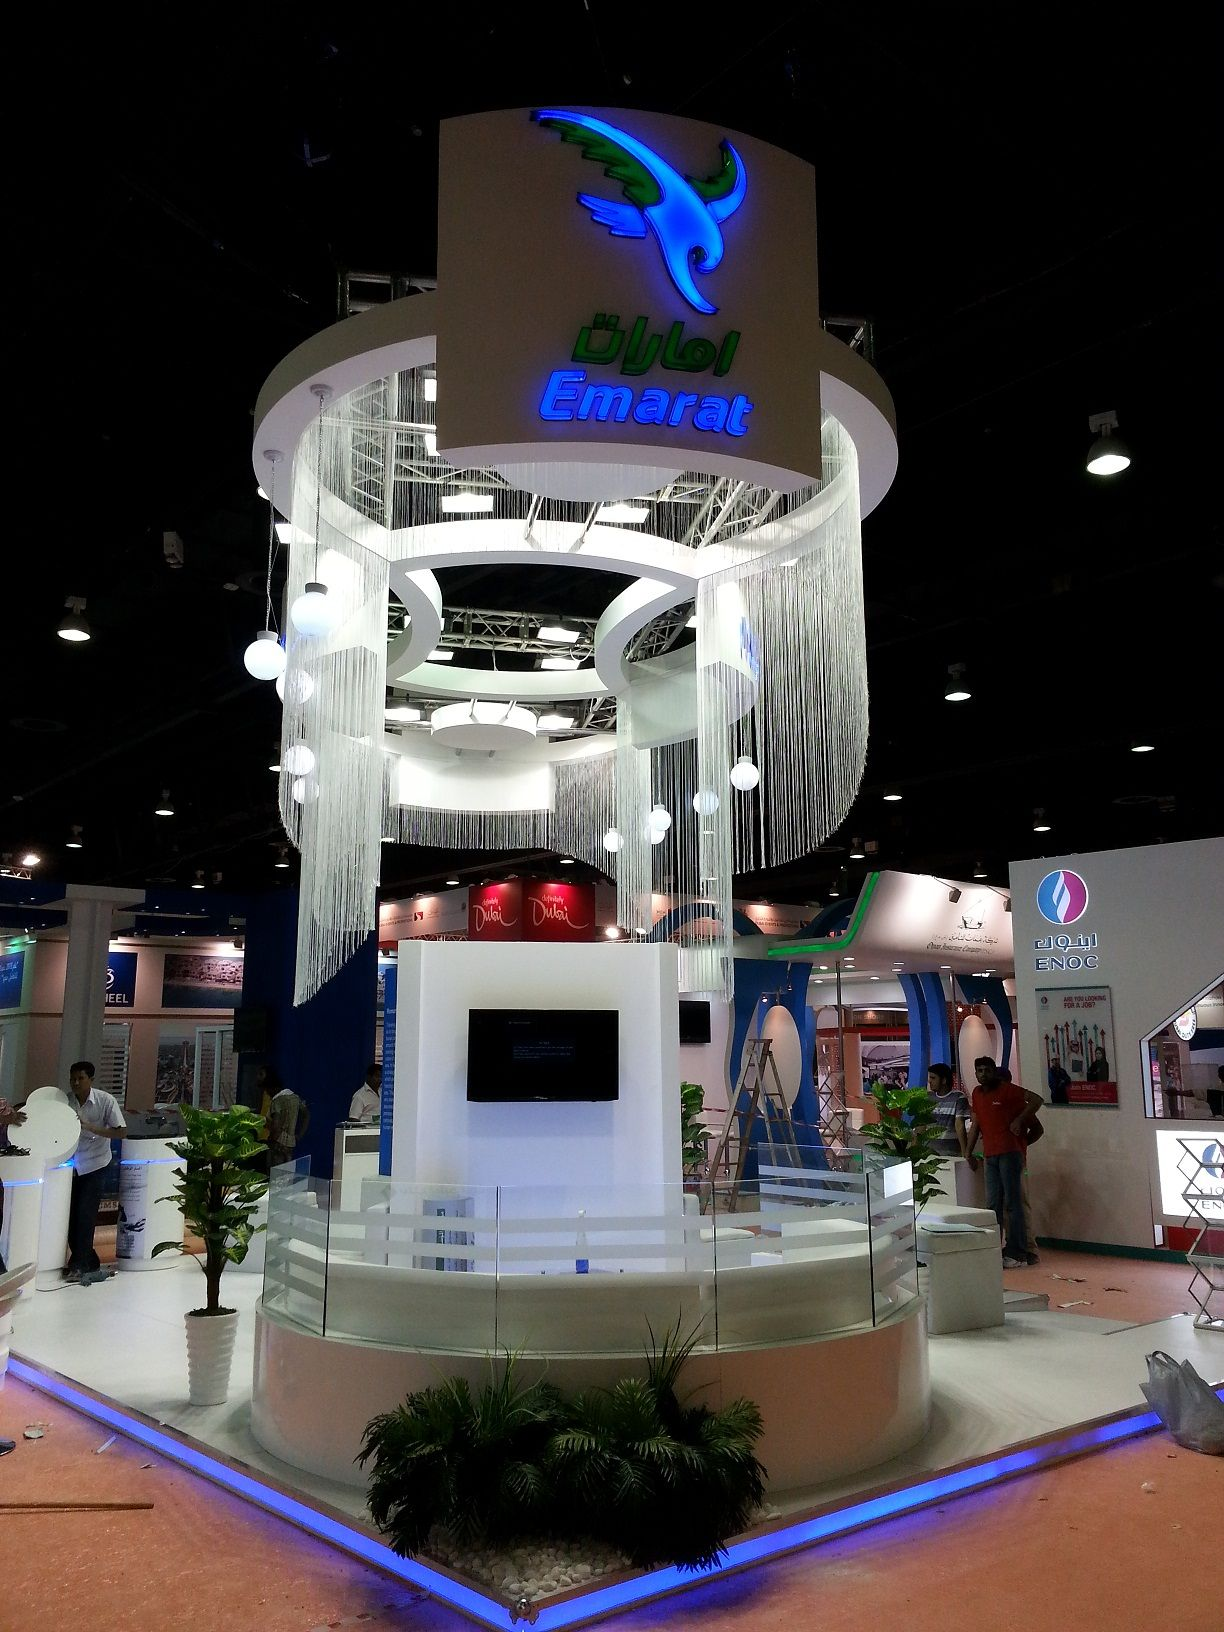 Exhibition Stand In Dubai : Emarat exhibition stand dubai exhibit tradeshow